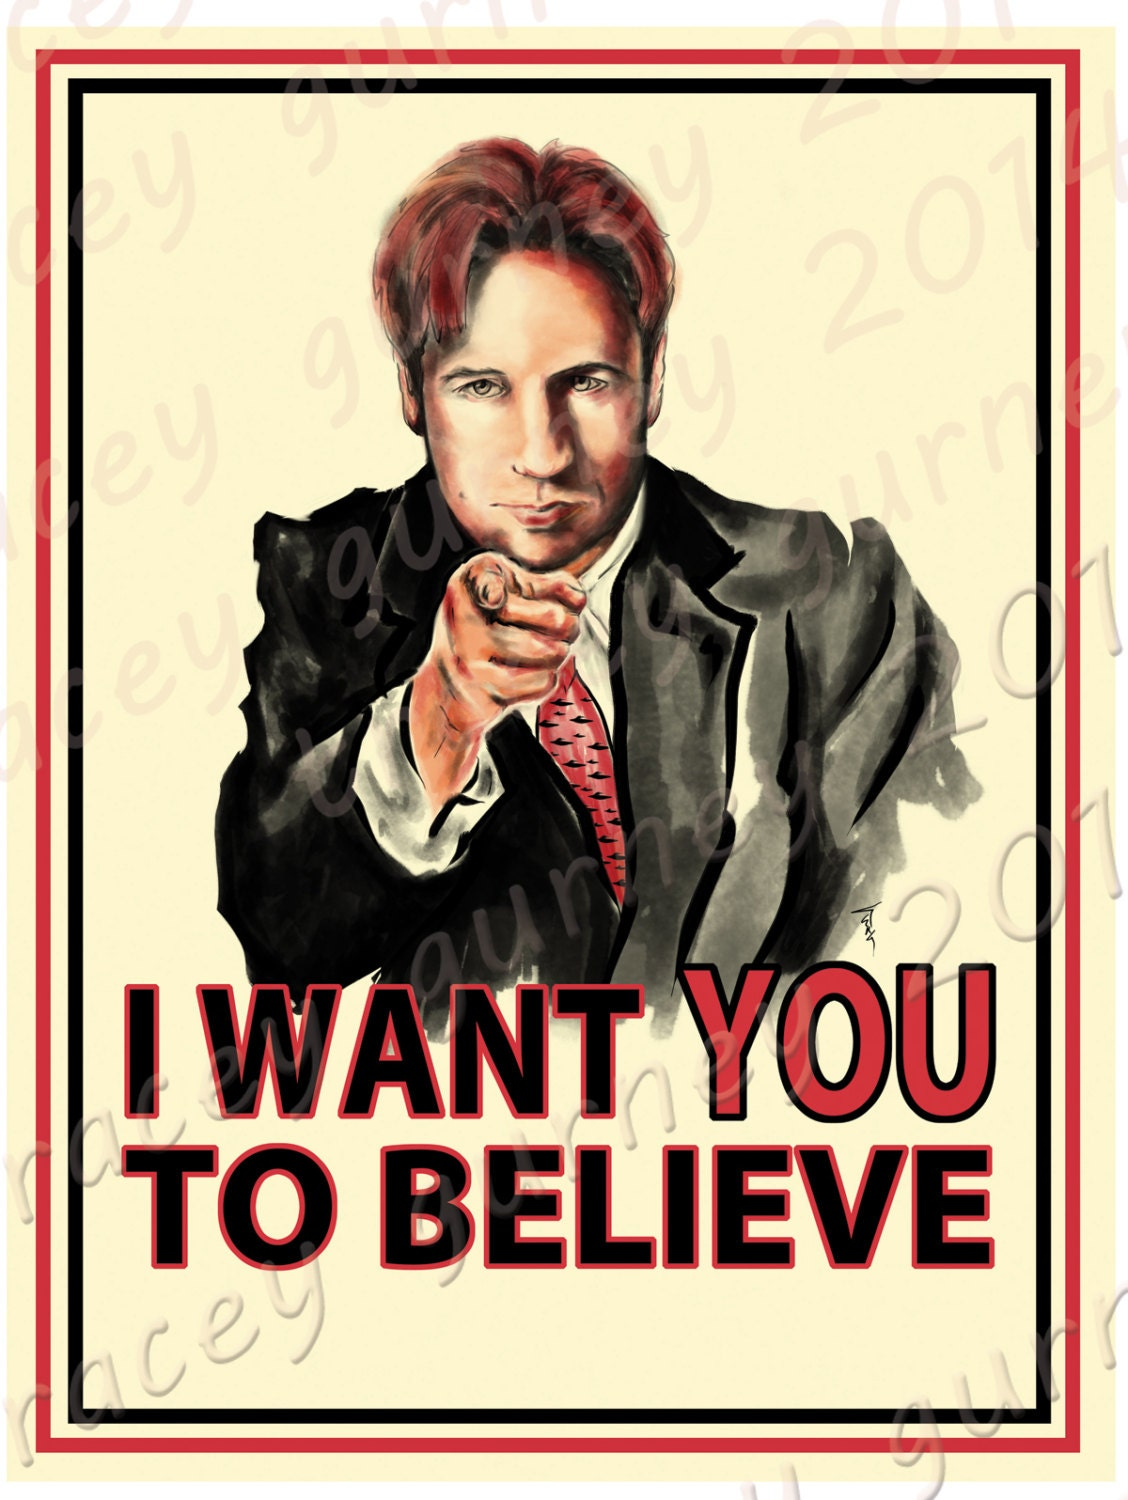 Uncle mulder wants you to believe vinyl sticker for I need an engineer